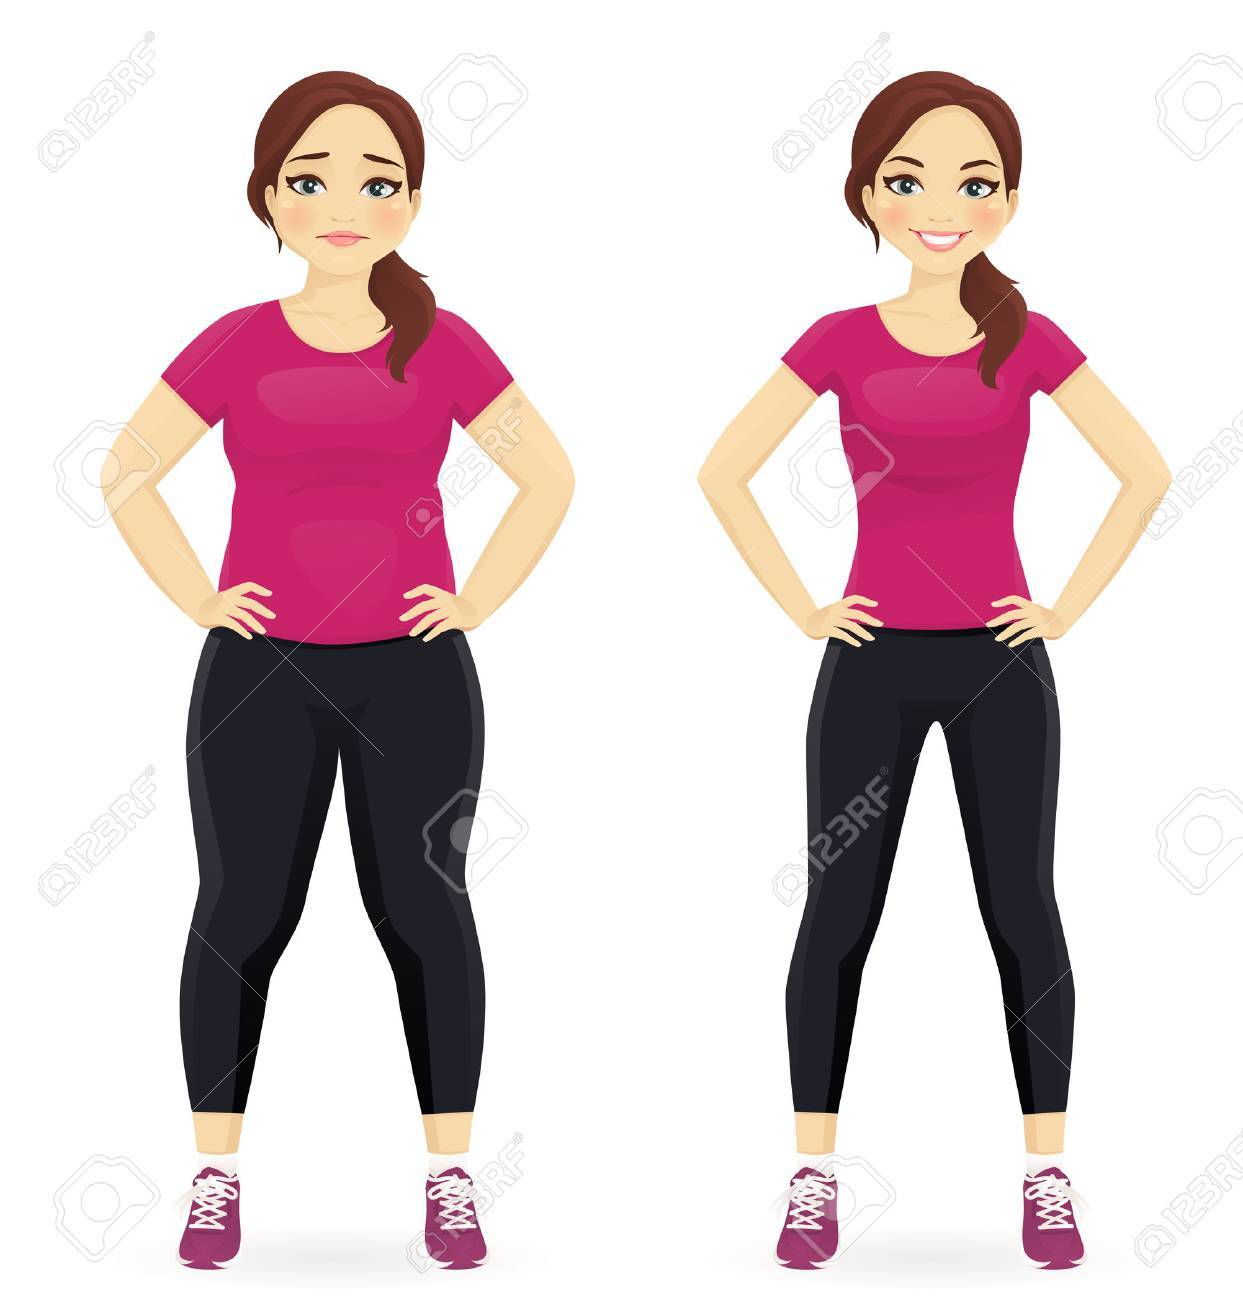 Fat and slim woman, before and after weight loss in sportswear isolated - 68882873